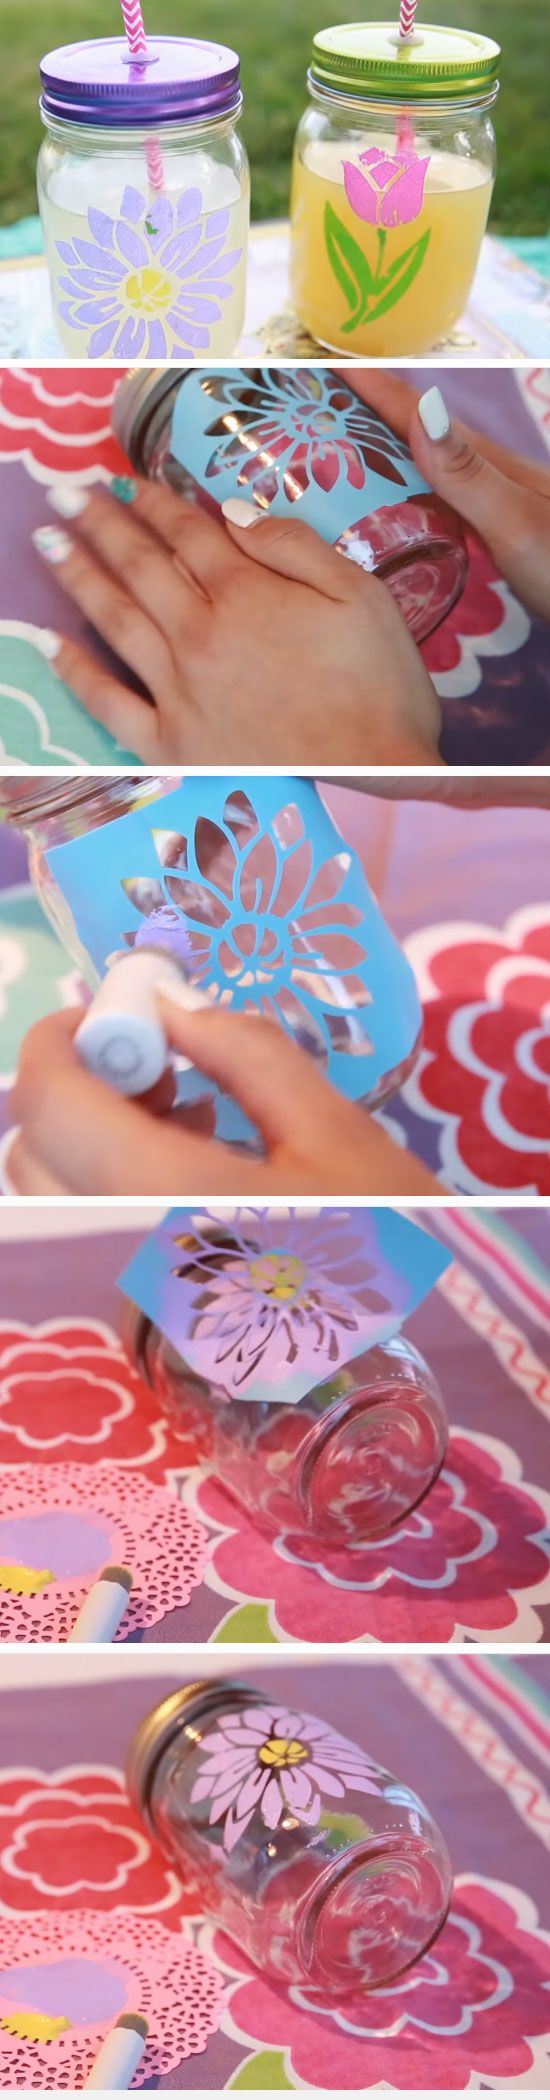 On the Go Mason Jars | DIY Mothers Day Gift Ideas from Daughter | Handmade Birthday Gifts for Best Friend